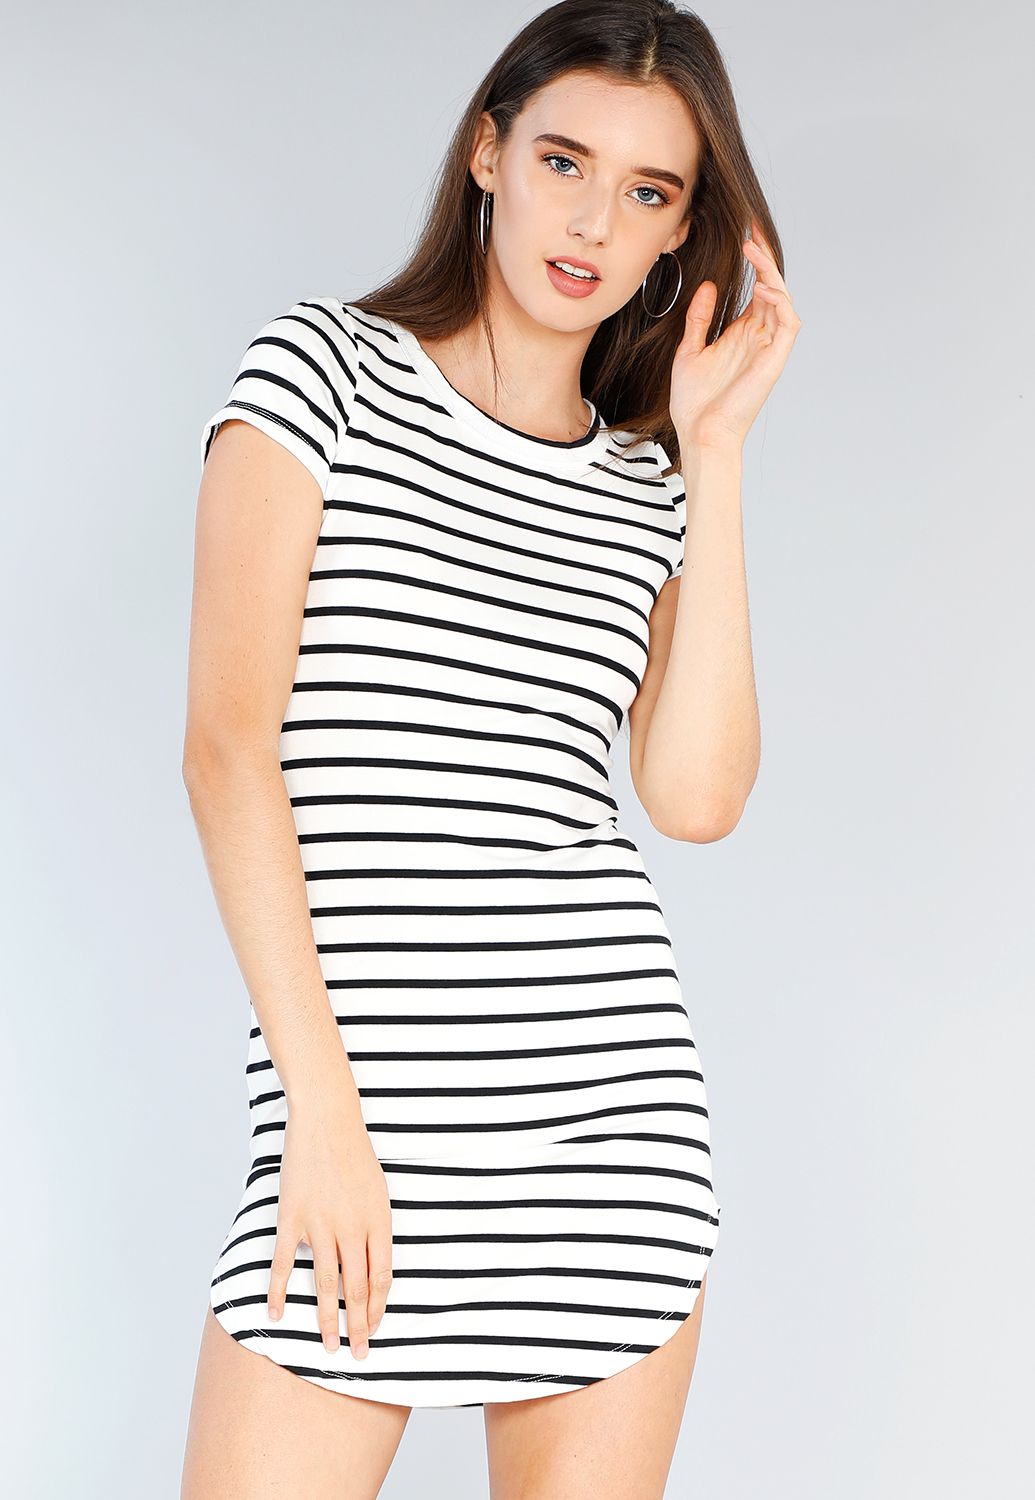 Striped Bodycon T Shirt Dress Shop Old Dressy Tops At Papaya Clothing